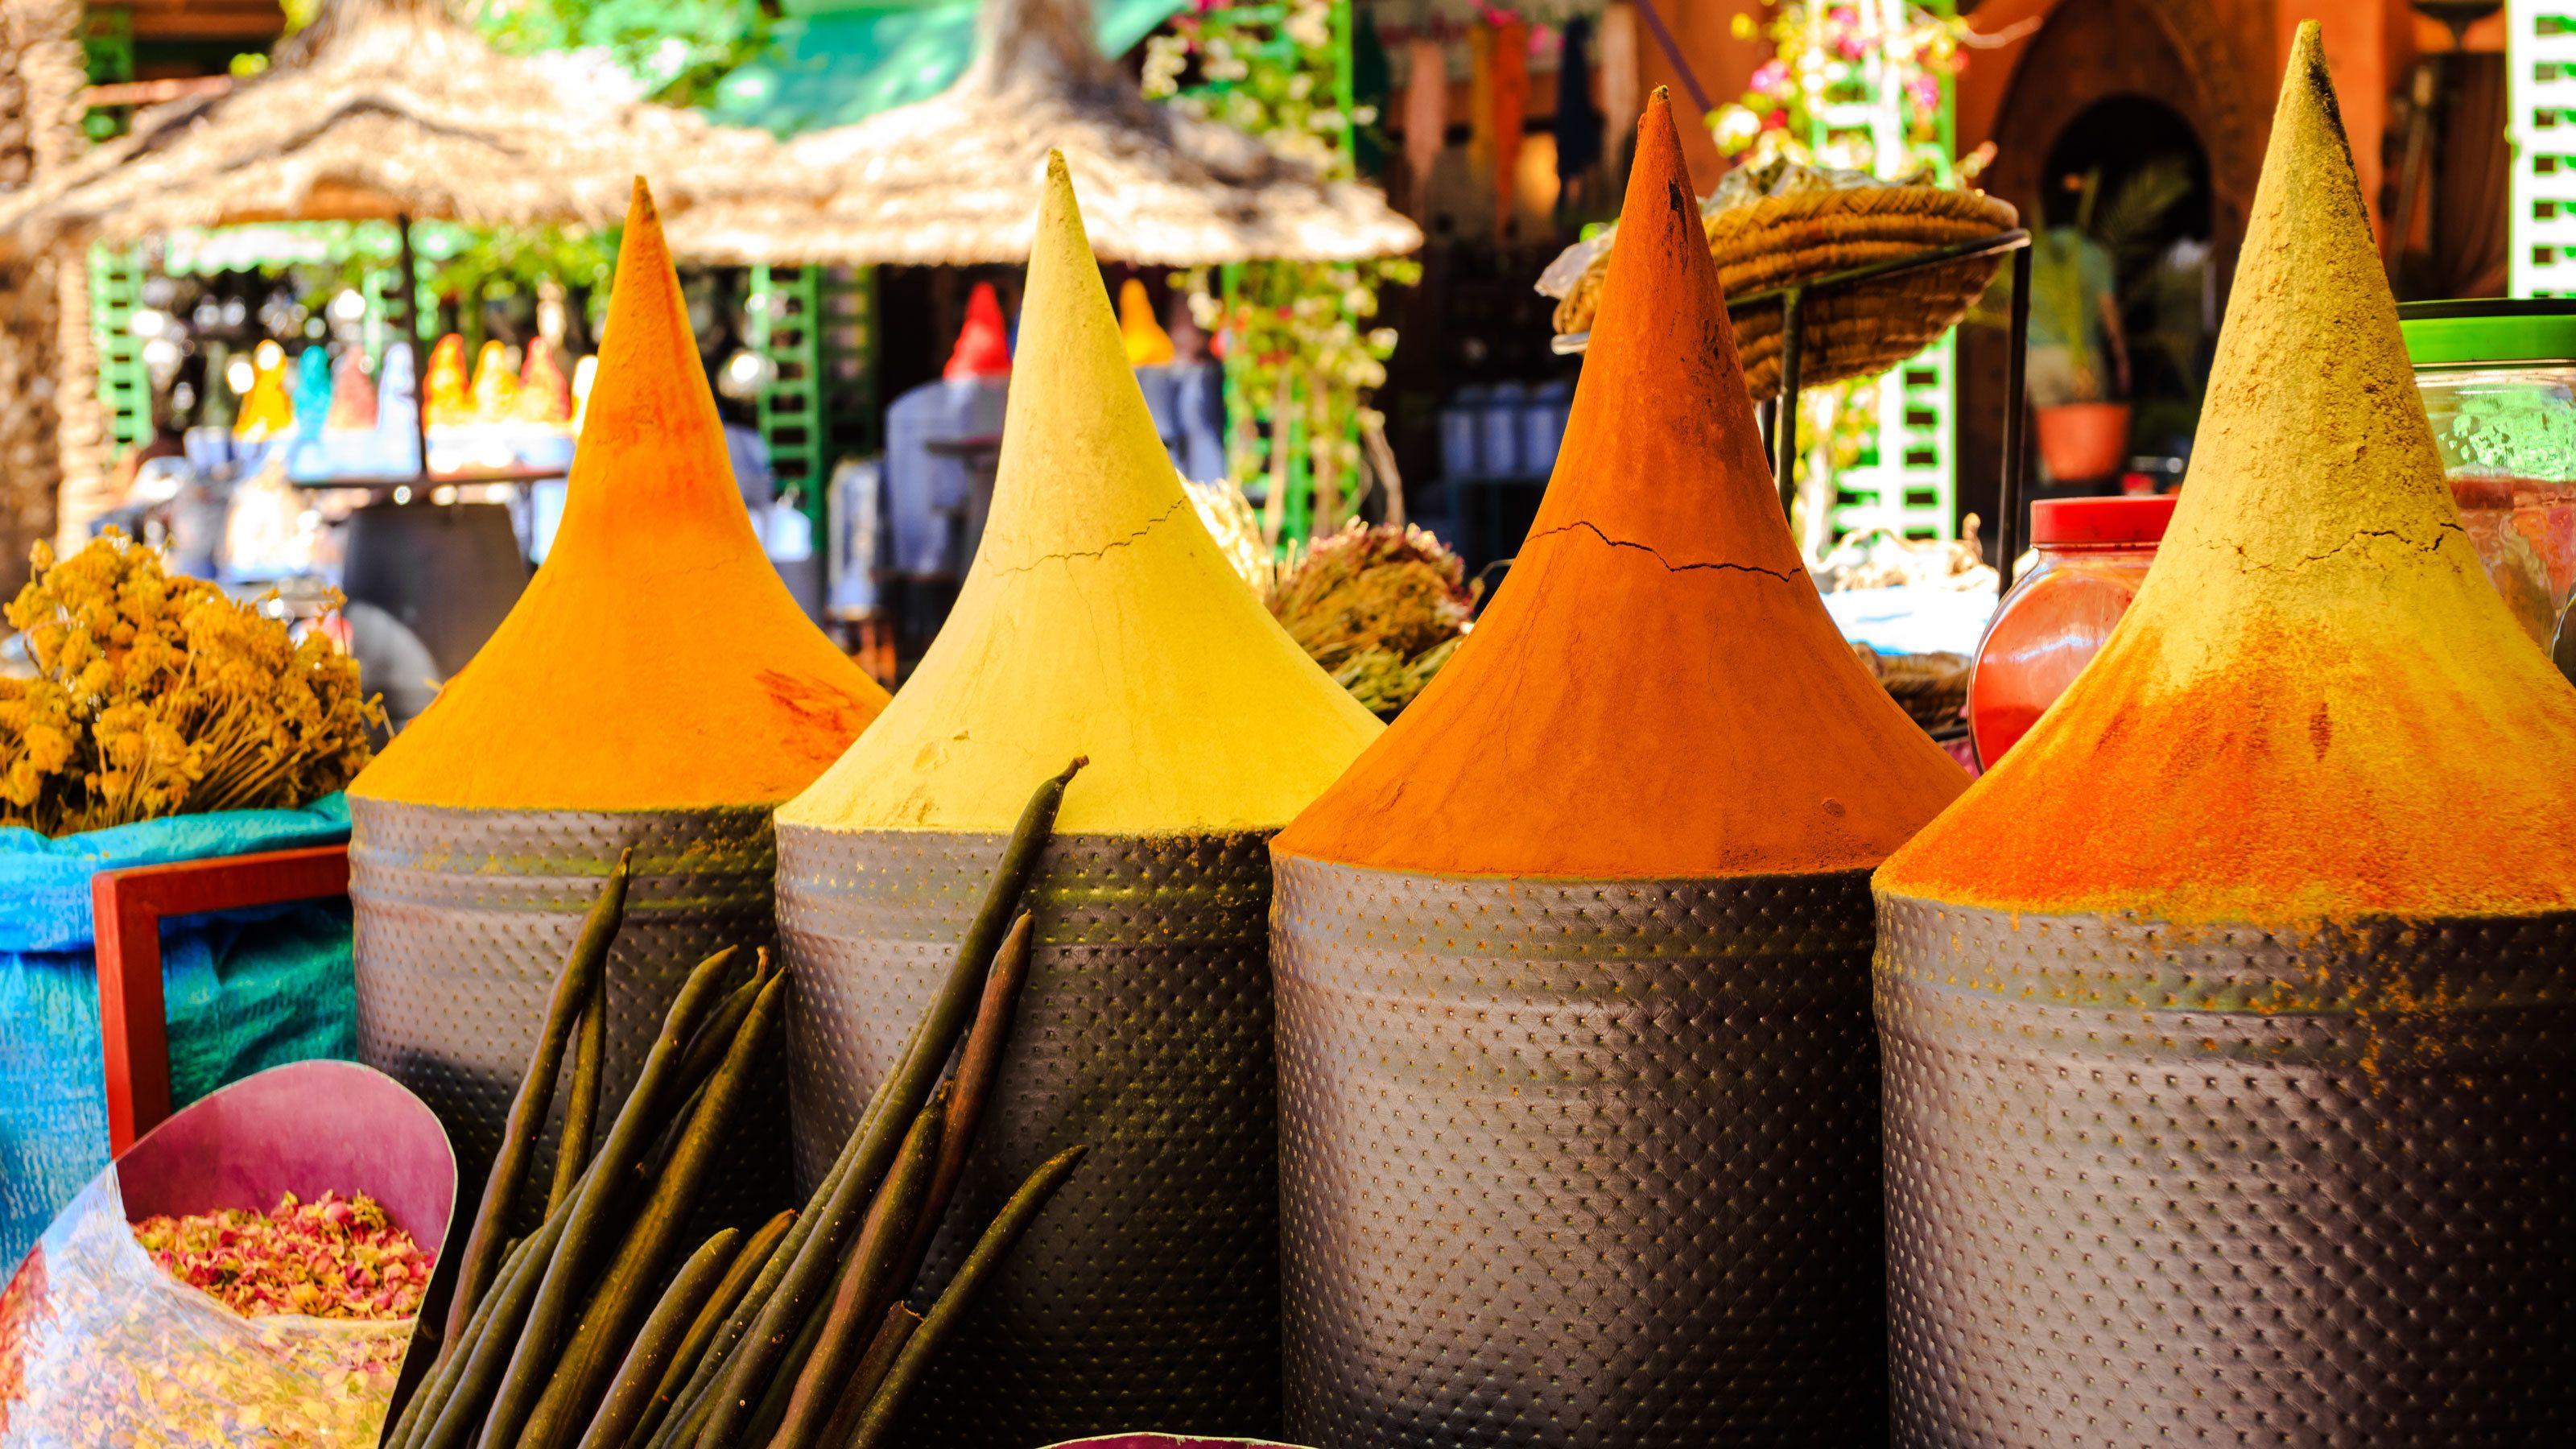 Spice and scent shop in Djemaa El Fnaa Square in Marrakech, Morocco